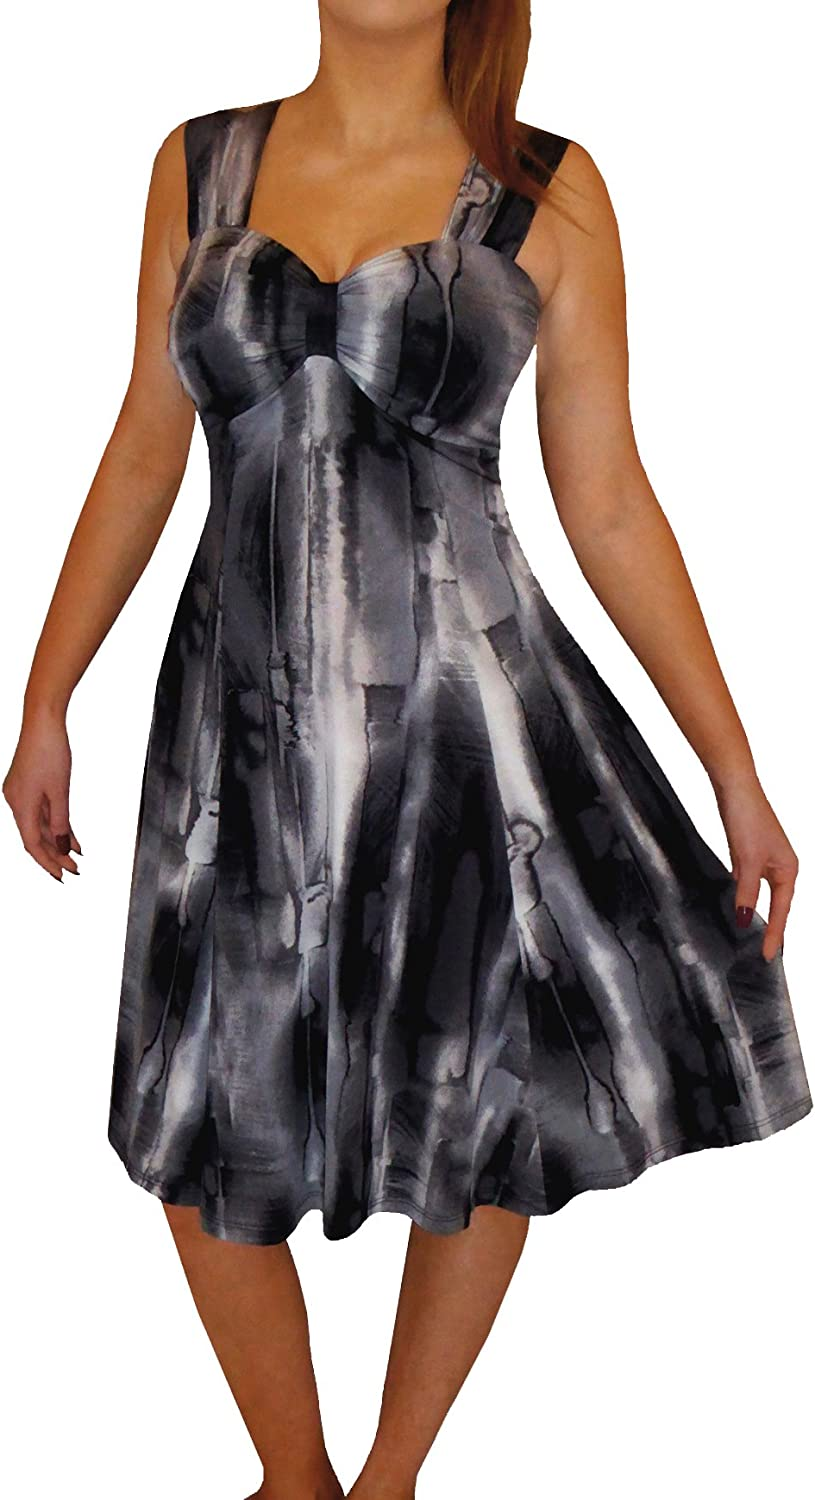 Funfash Plus Size Women Empire Waist A Line Black Cocktail Dress New Made in USA